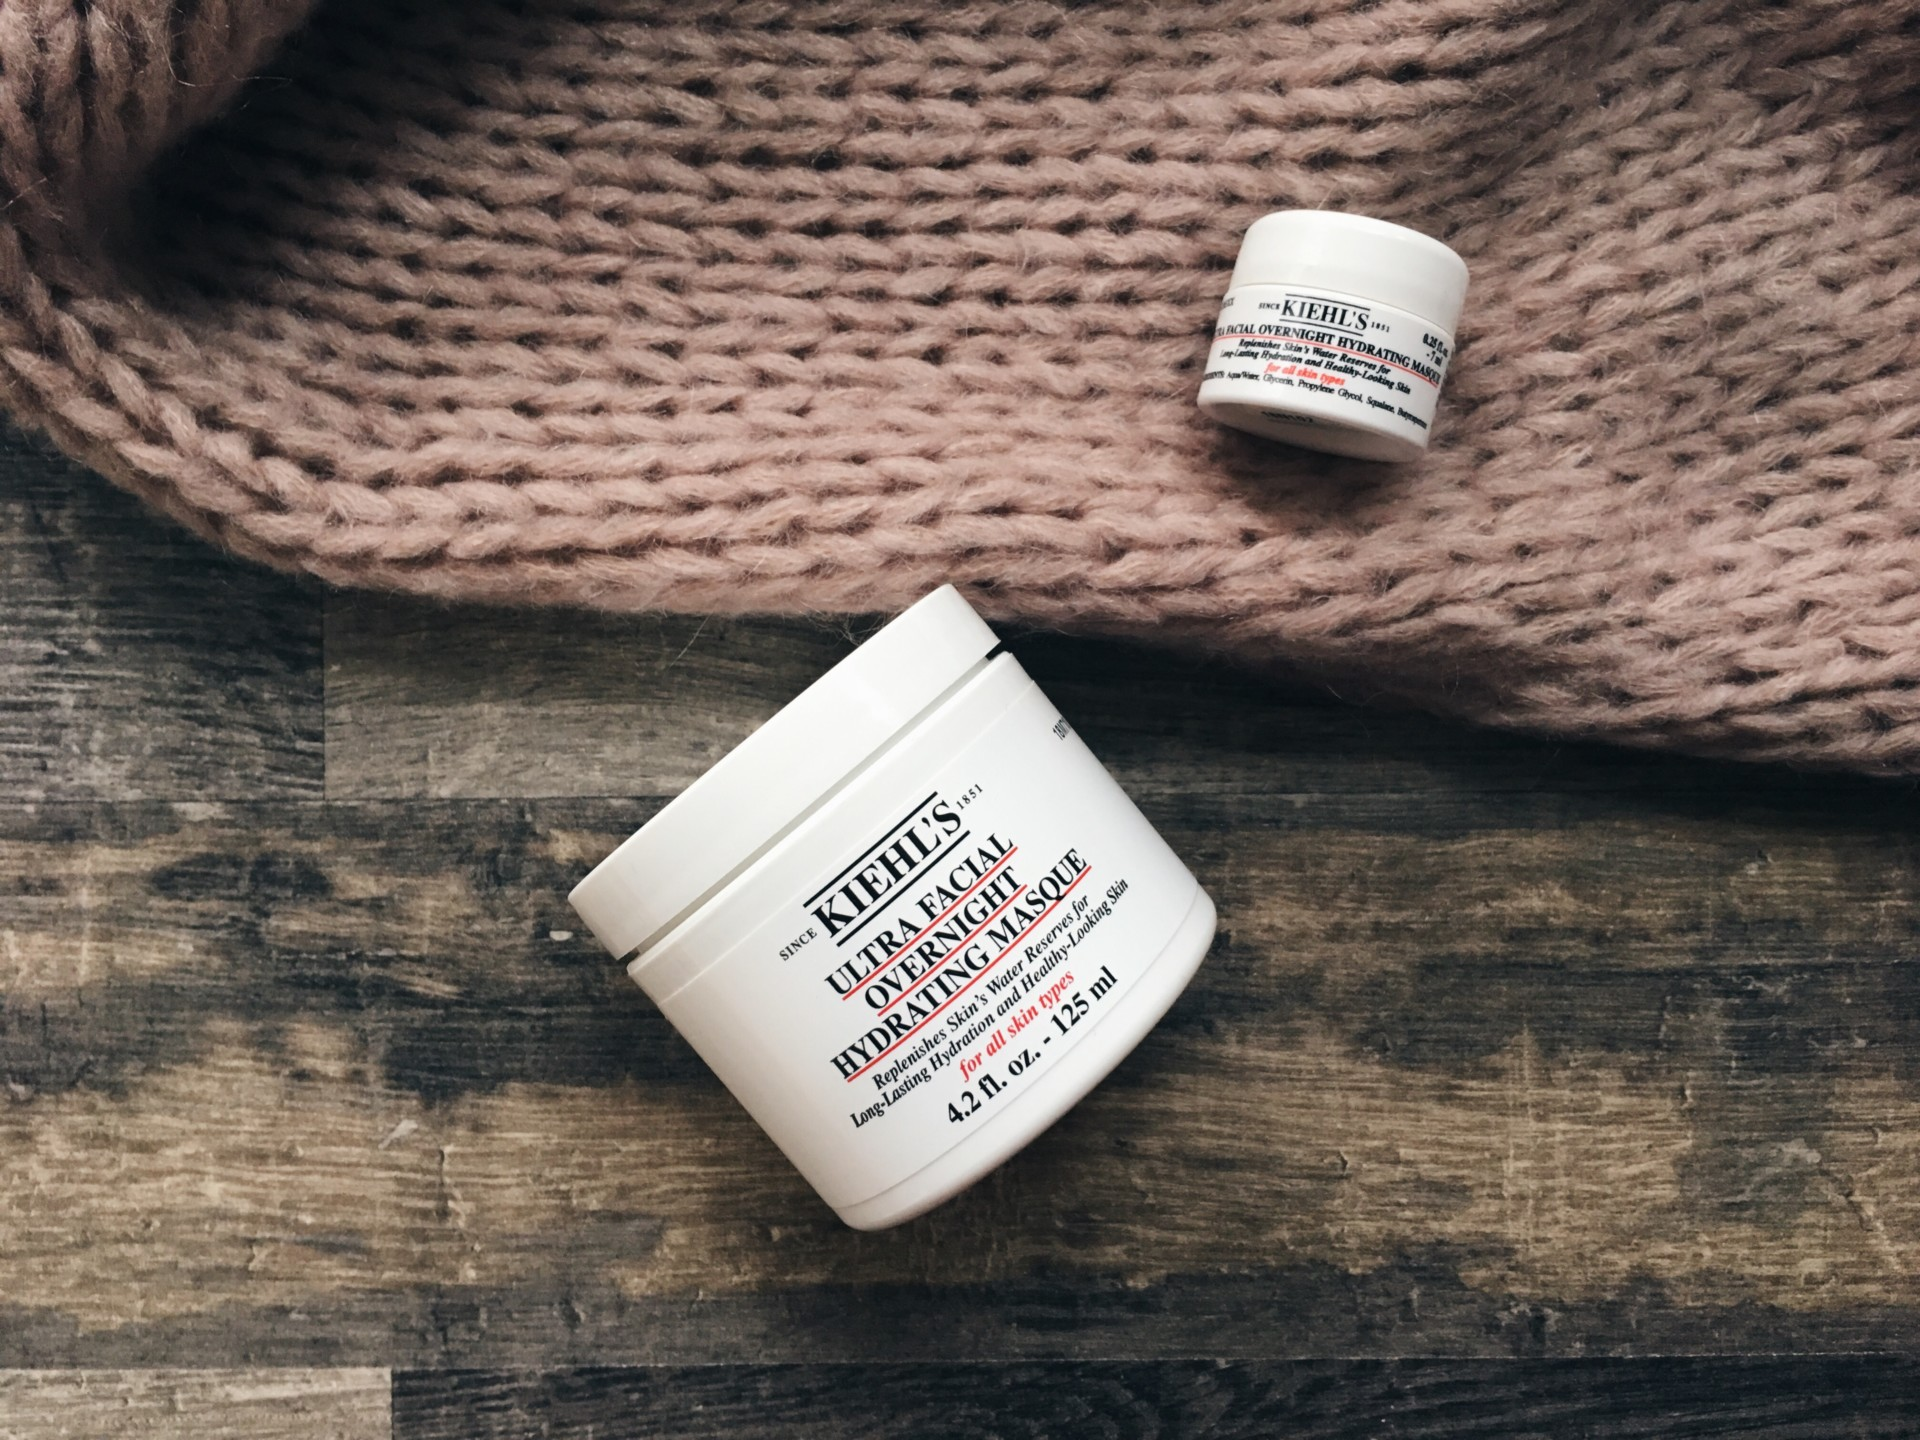 island_dbkstylez_essentials_must-have_kiehl´s